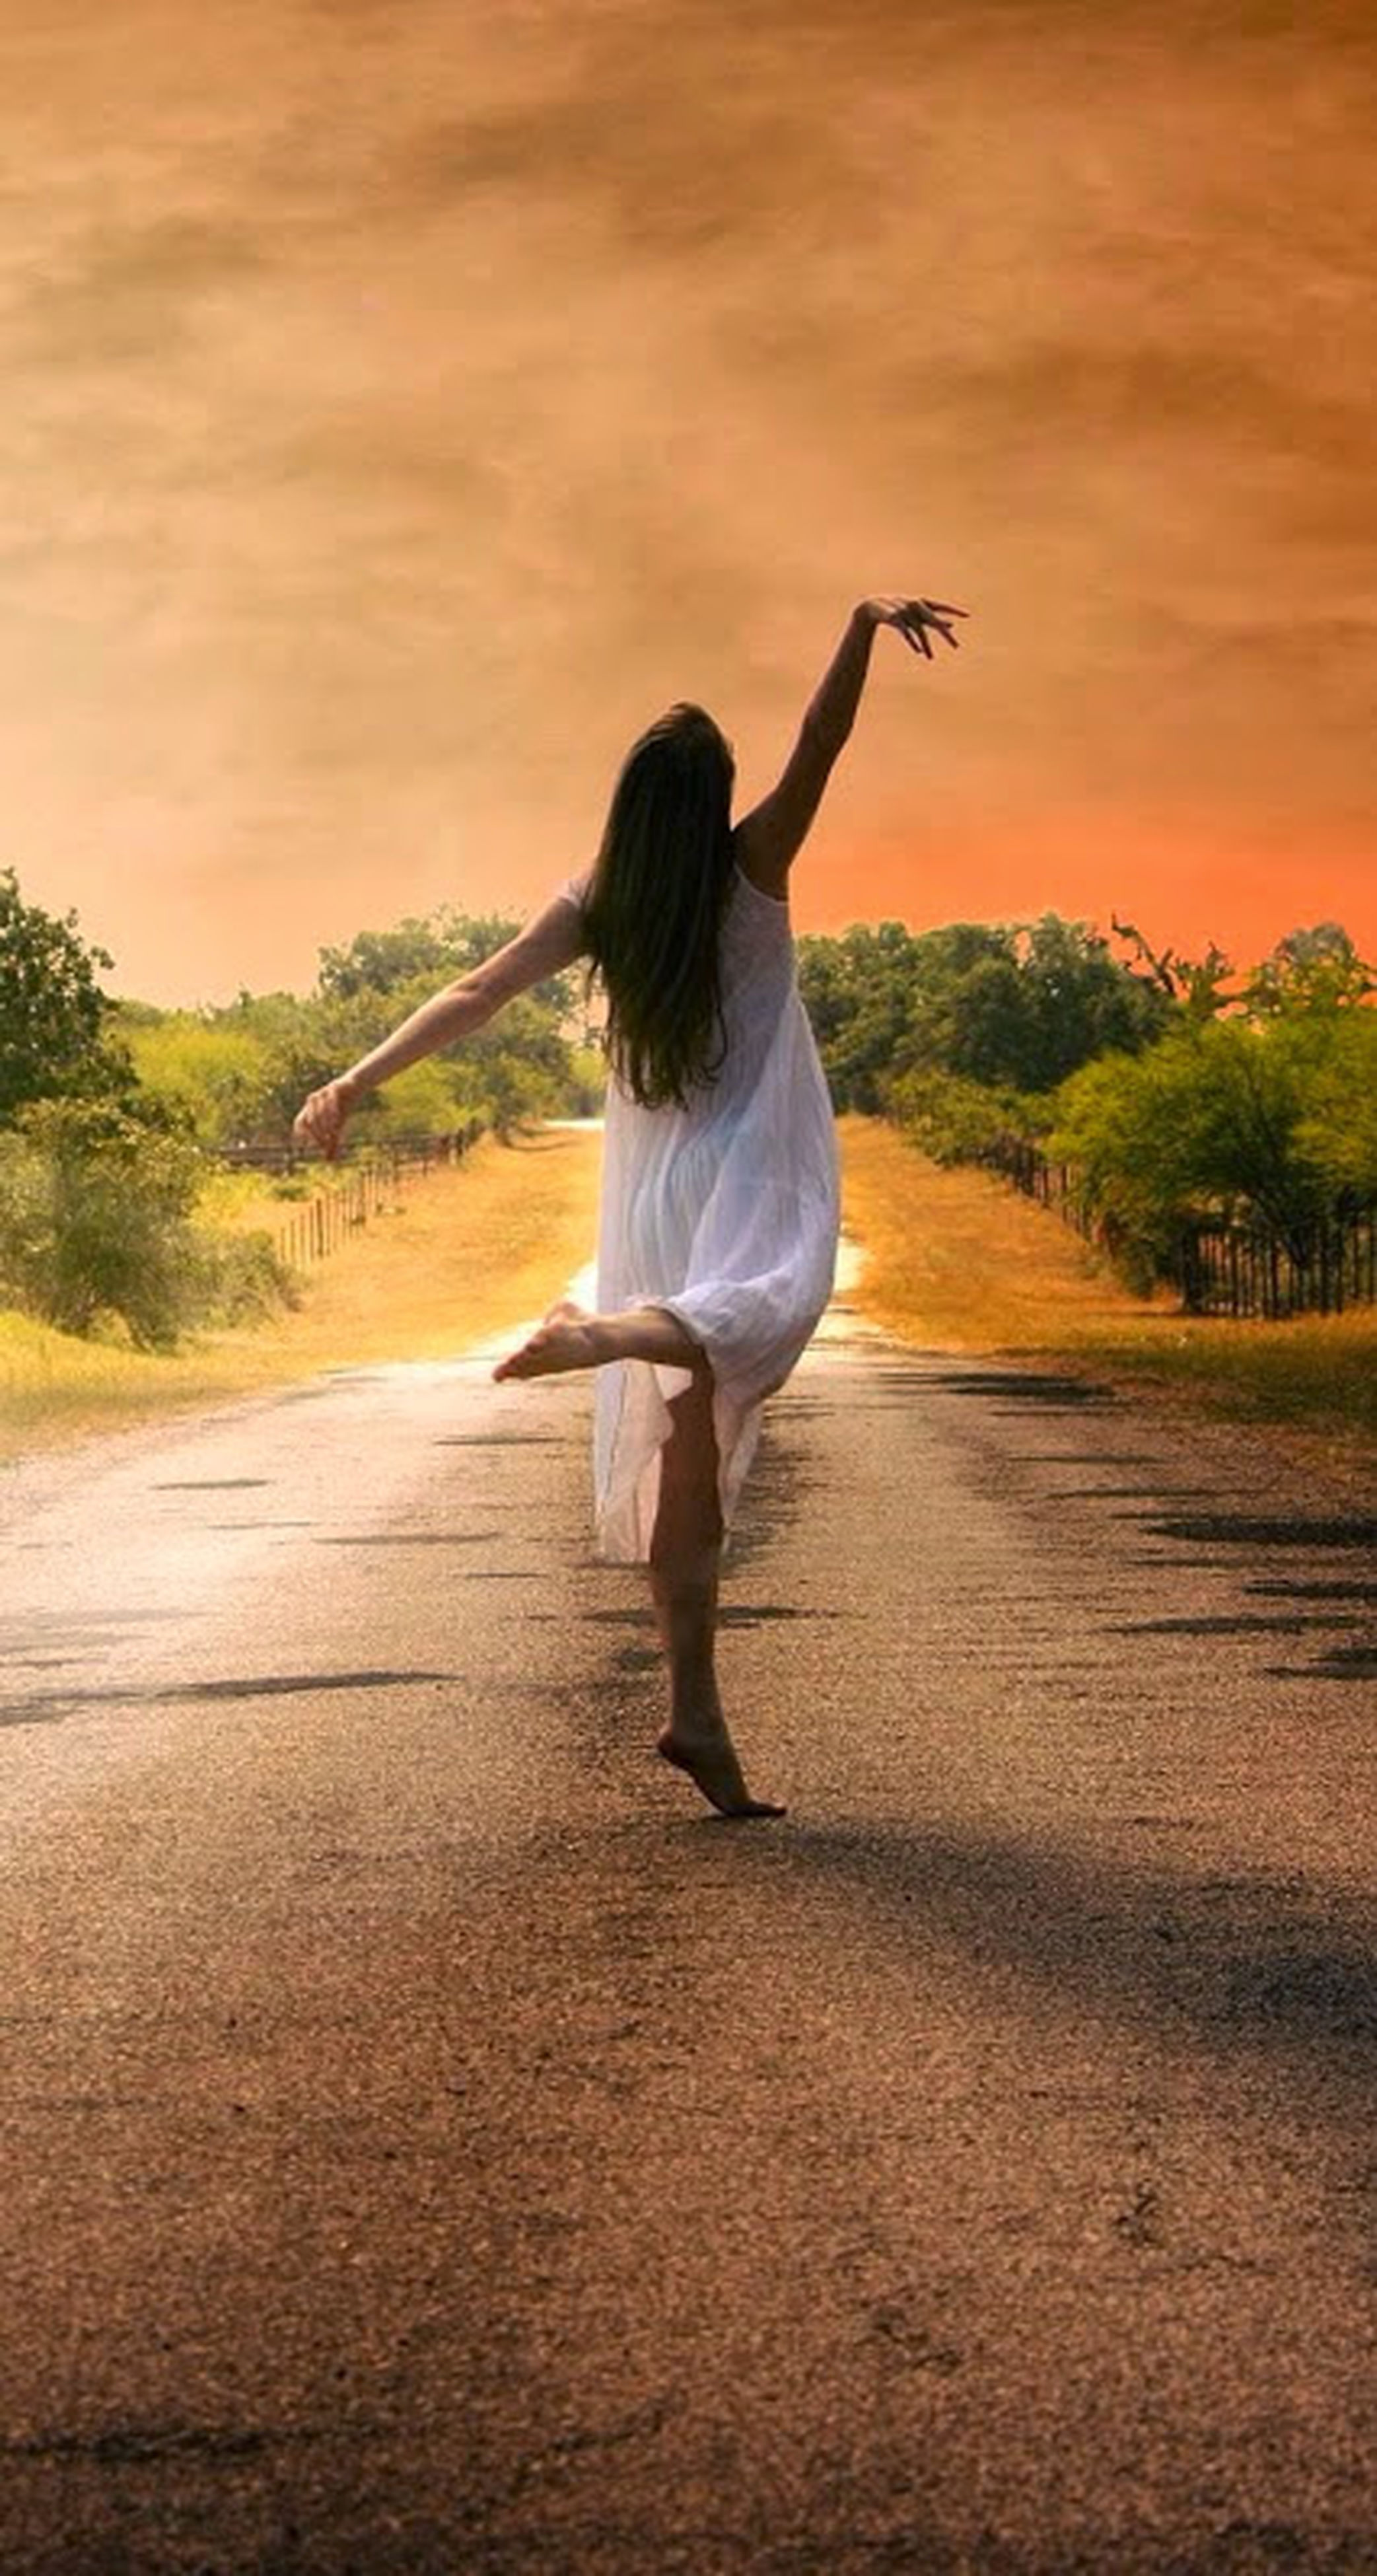 full length, lifestyles, leisure activity, rear view, casual clothing, sky, standing, tree, sunset, walking, long hair, person, road, side view, young adult, motion, young women, the way forward